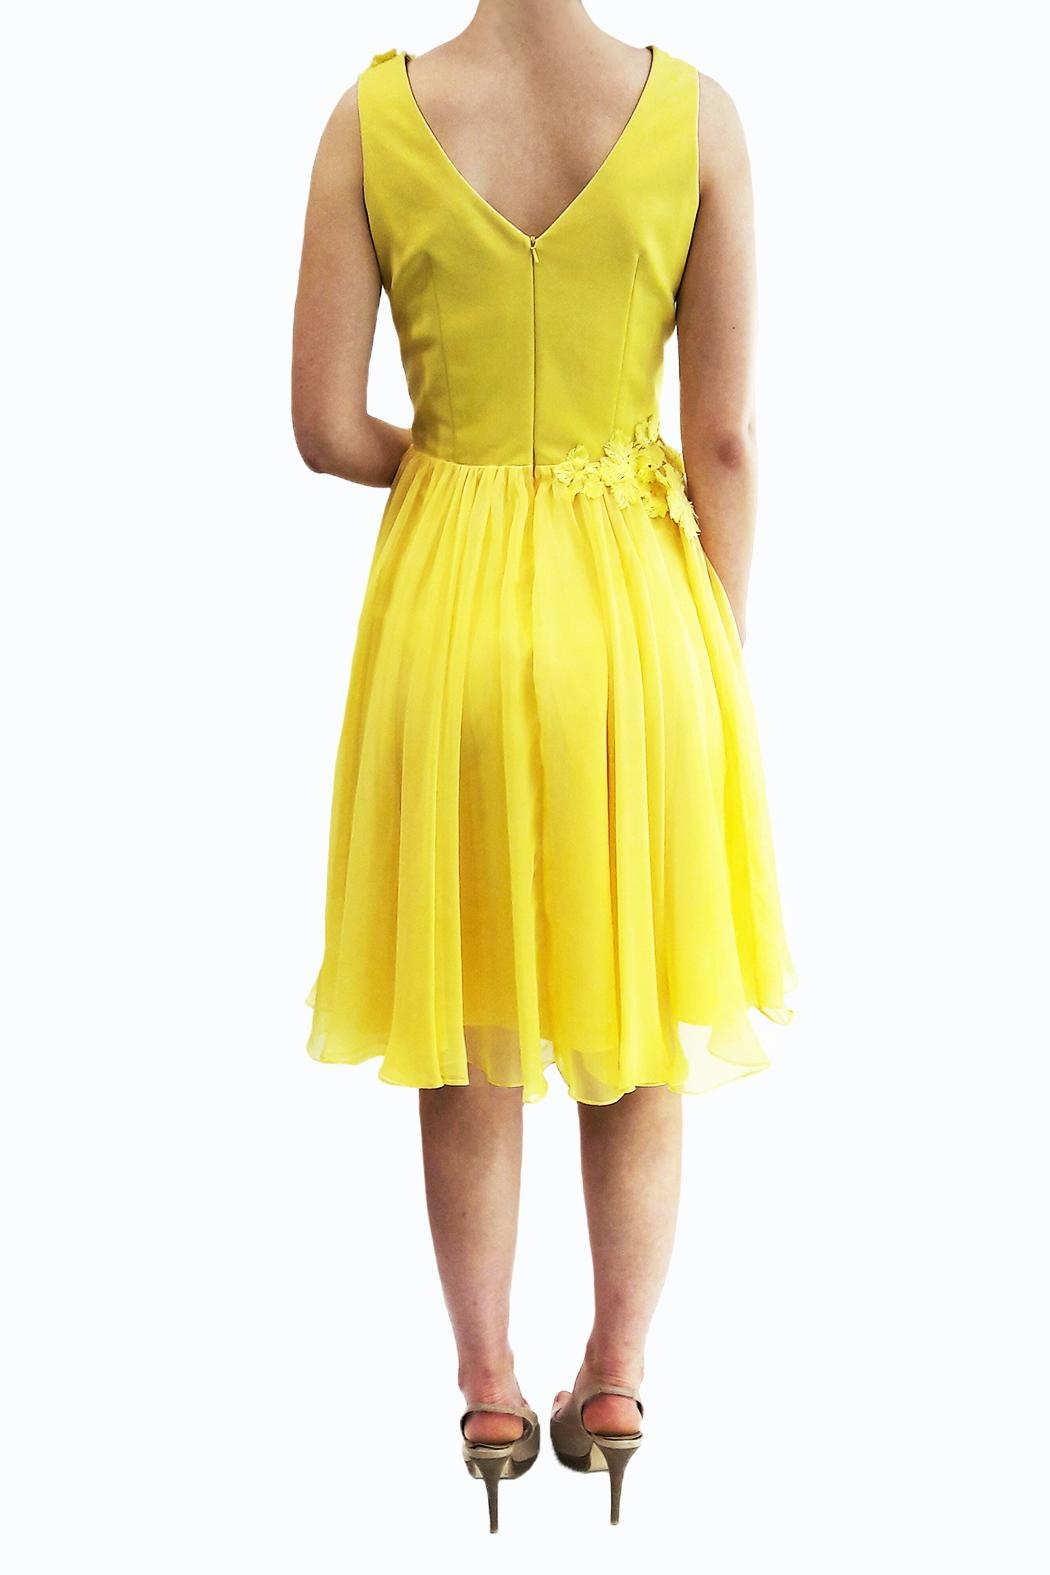 Isabel Garcia Sunny Flower Dress - Side Cropped Image